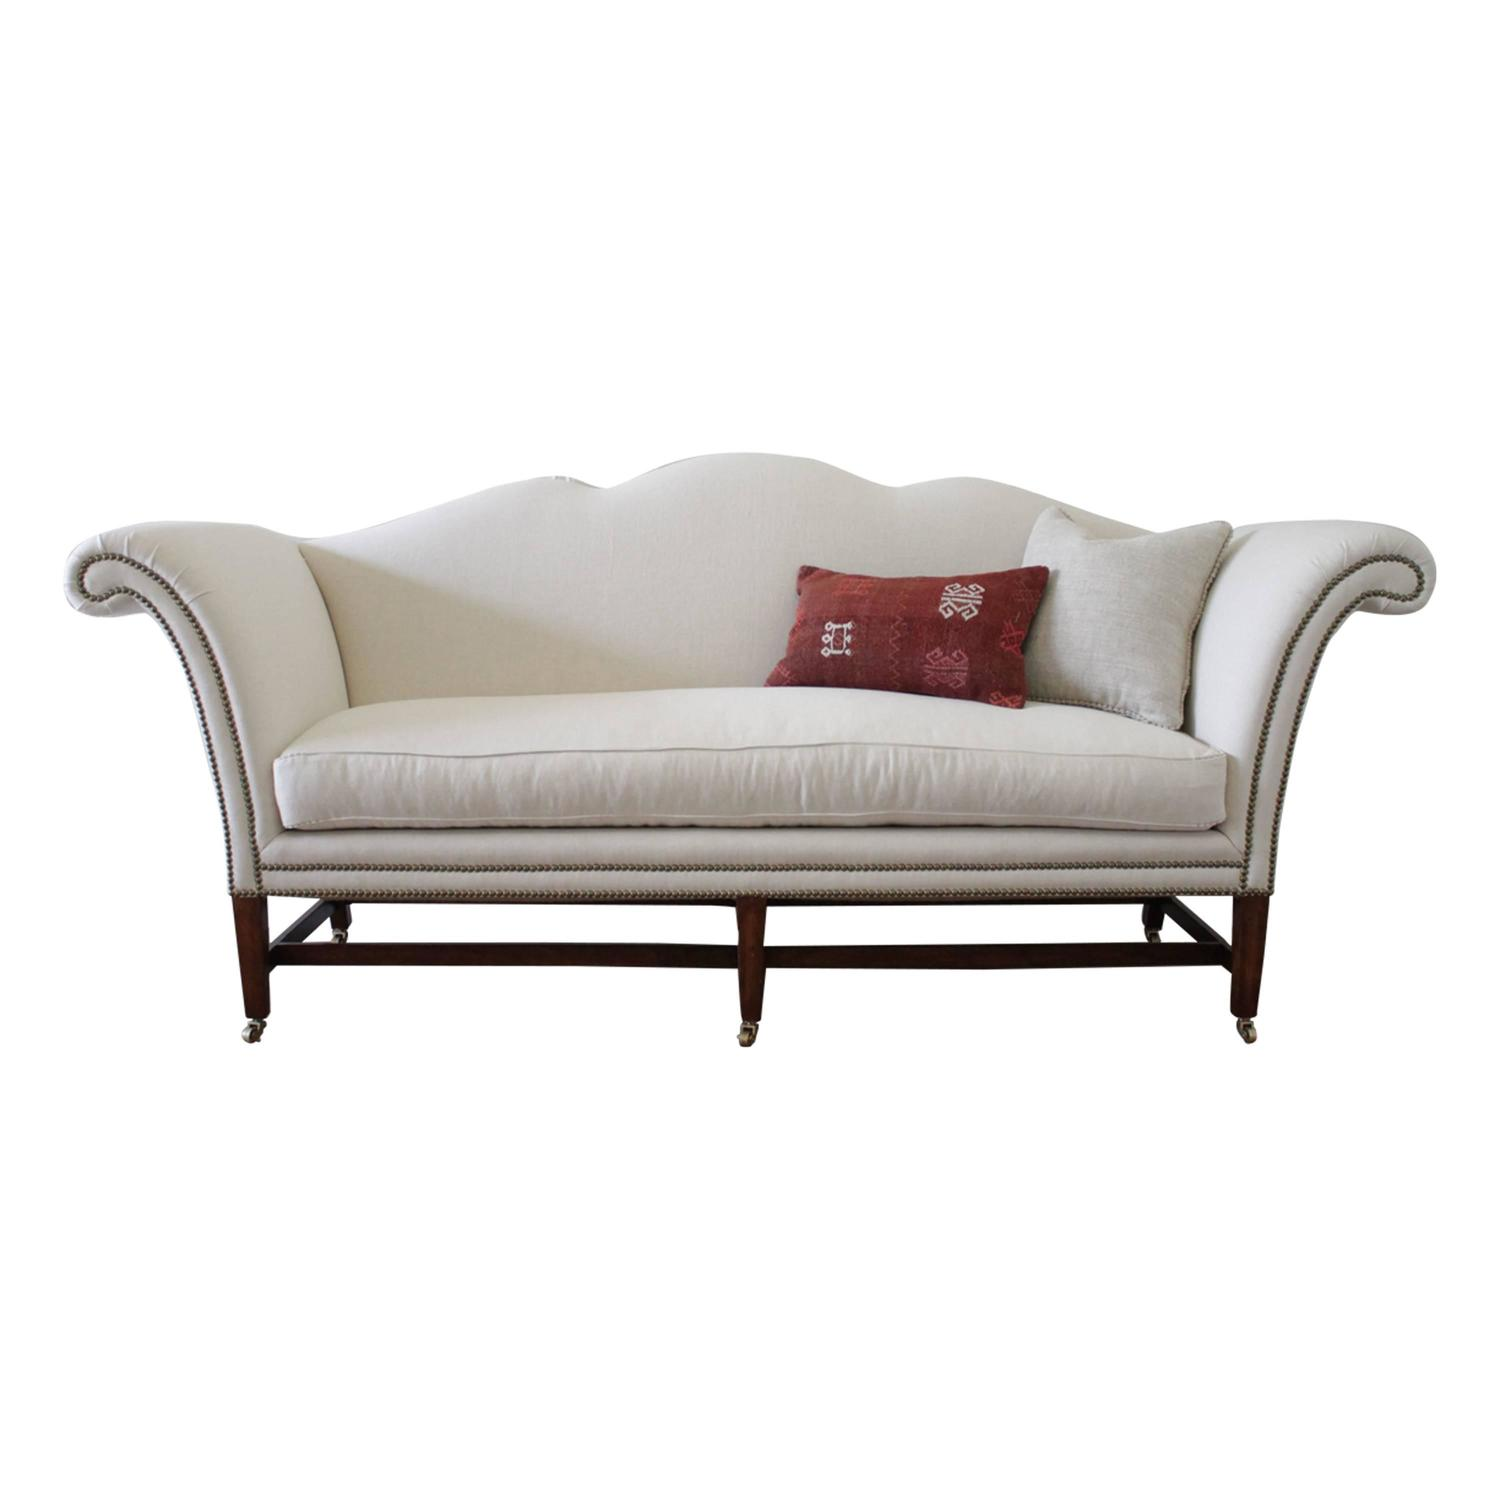 Vintage Chippendale Style Sofa Upholstered in Natural Linen at 1stdibs